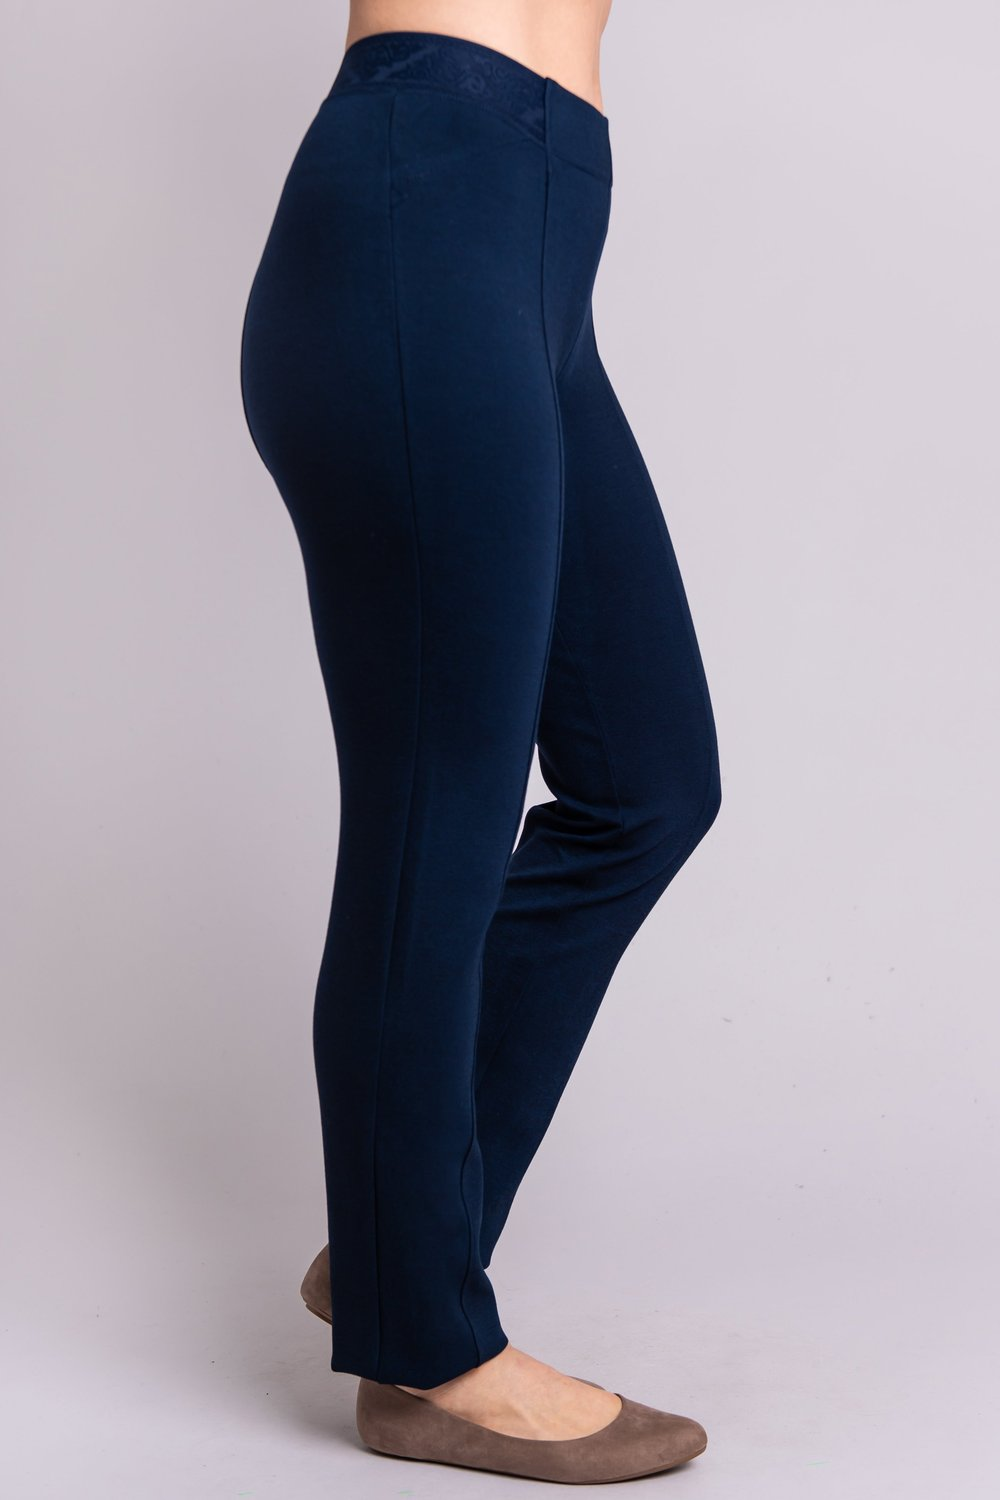 Right leg view of women's petite indigo tailored pant, with slim and narrow leg. Made of sustainable and natural bamboo fibers, fair-trade.